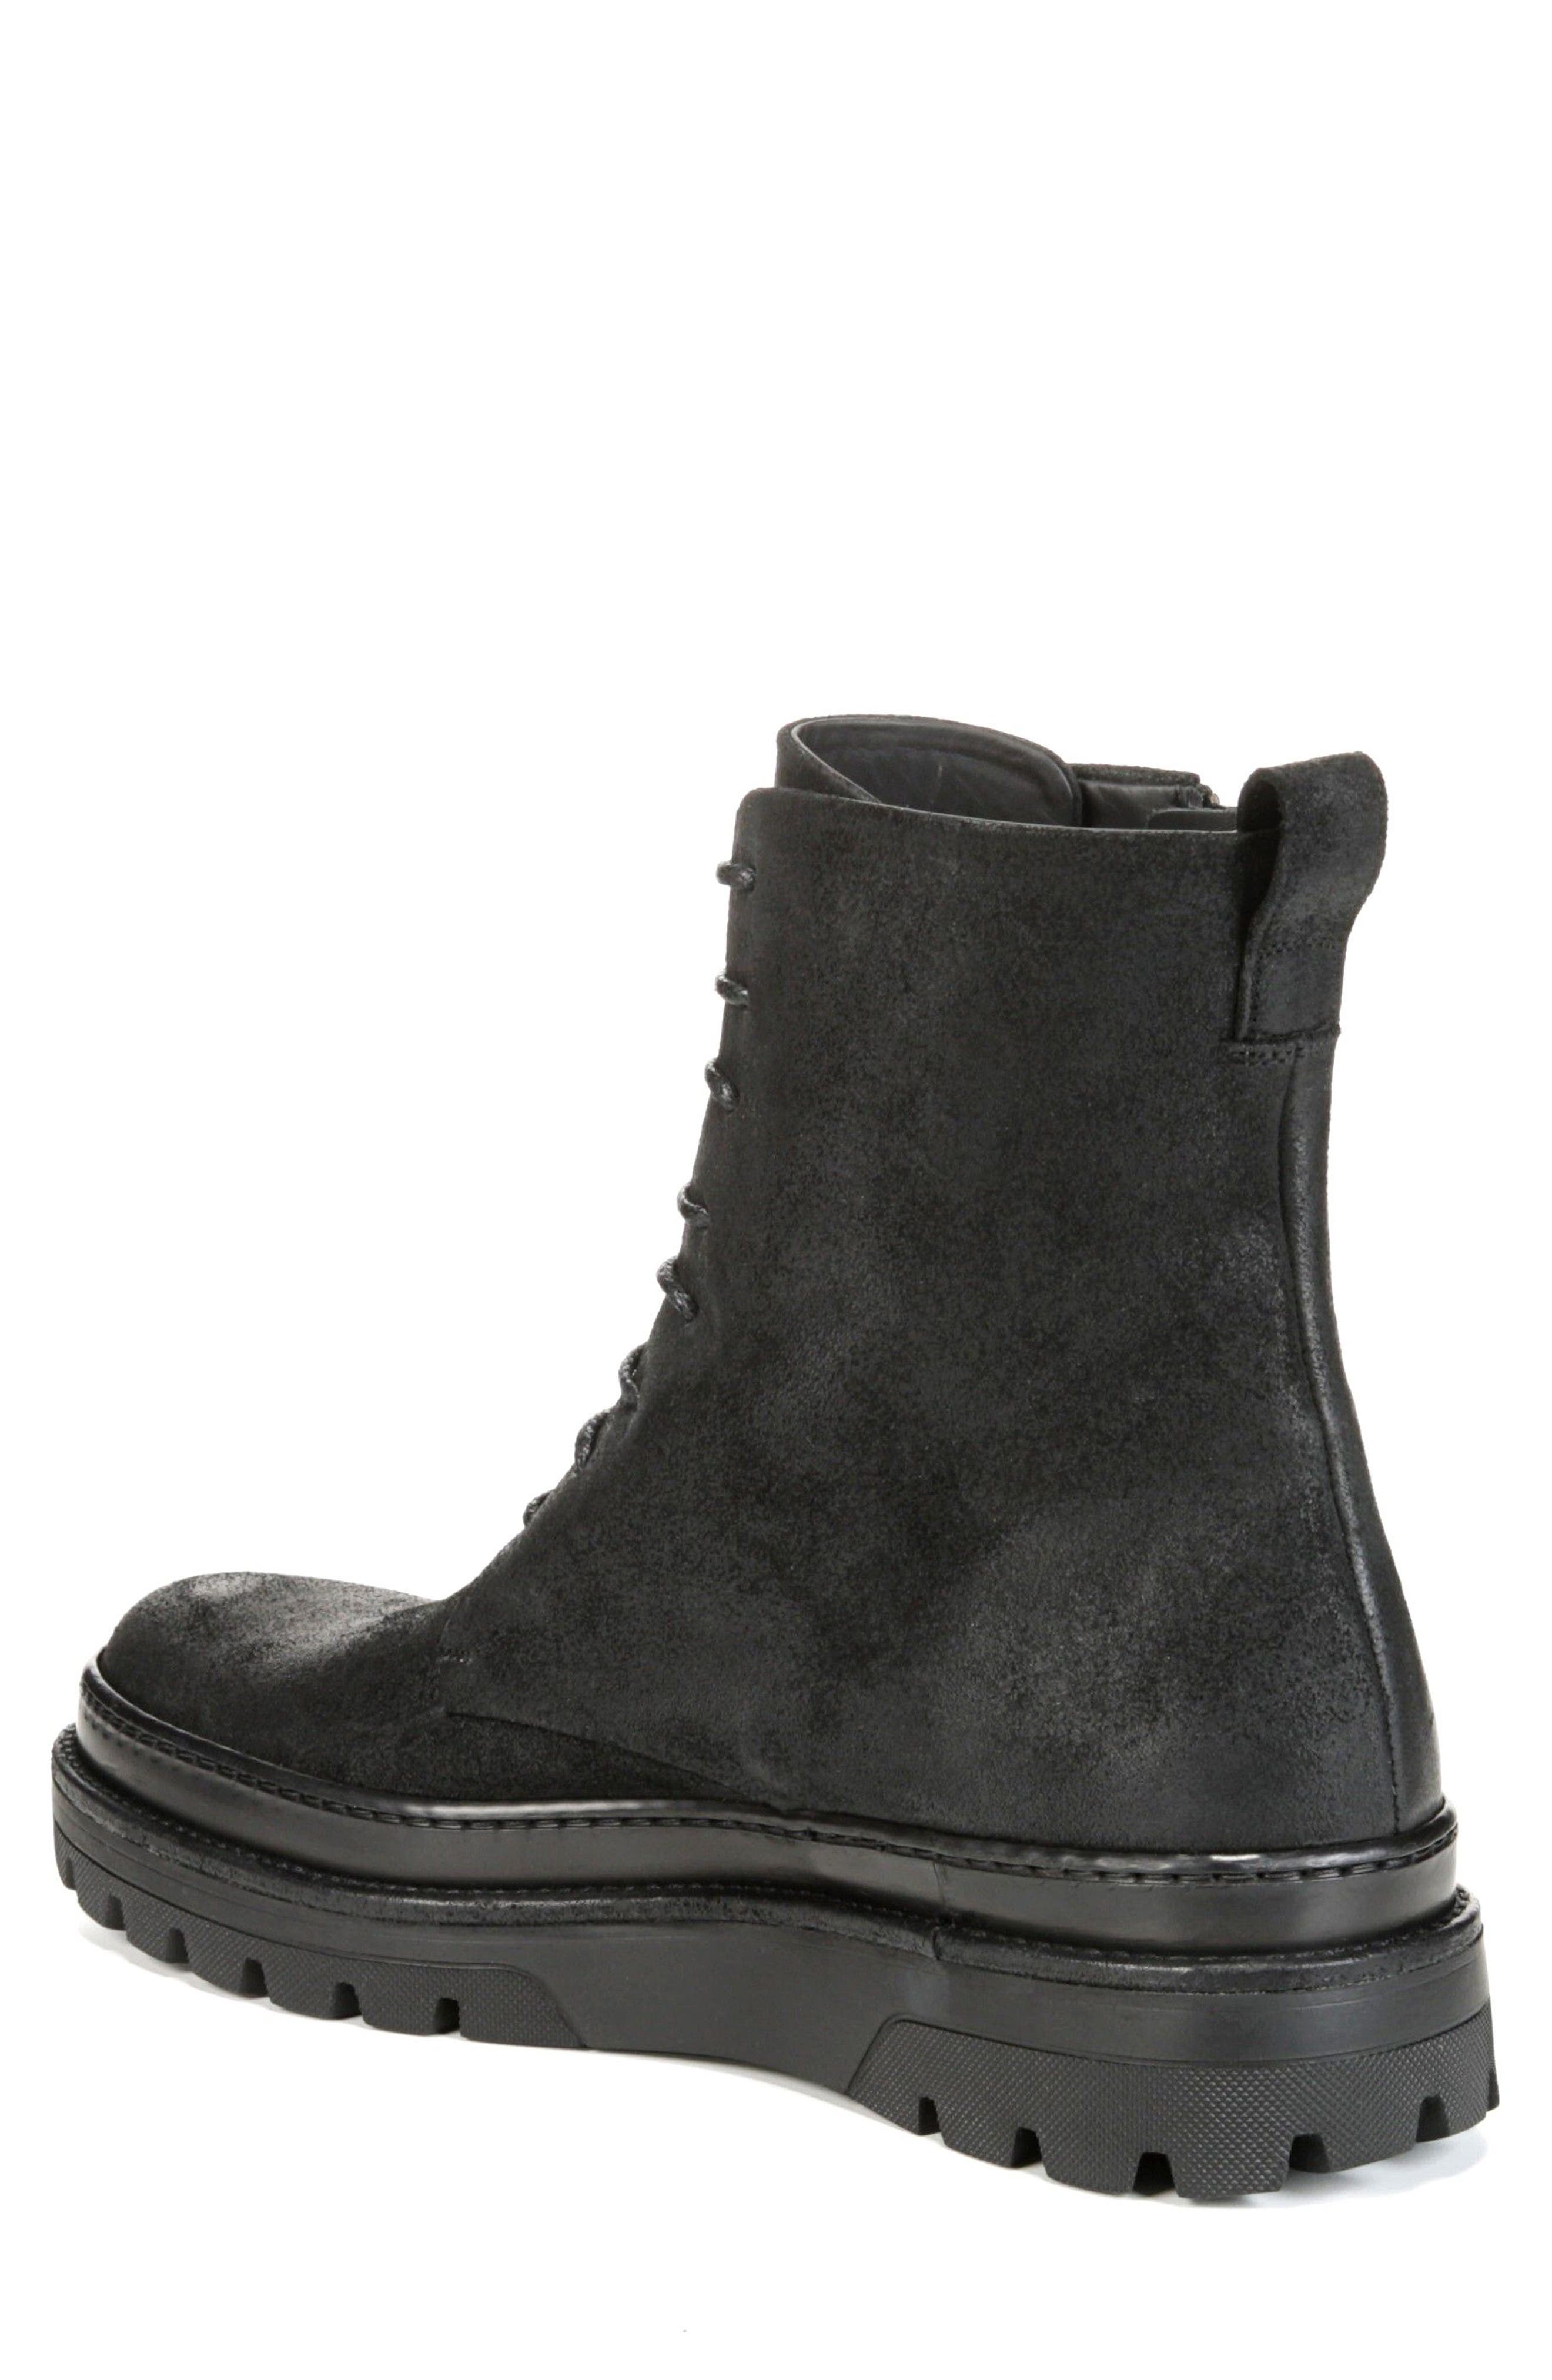 Edgar Plain Toe Boot,                             Alternate thumbnail 4, color,